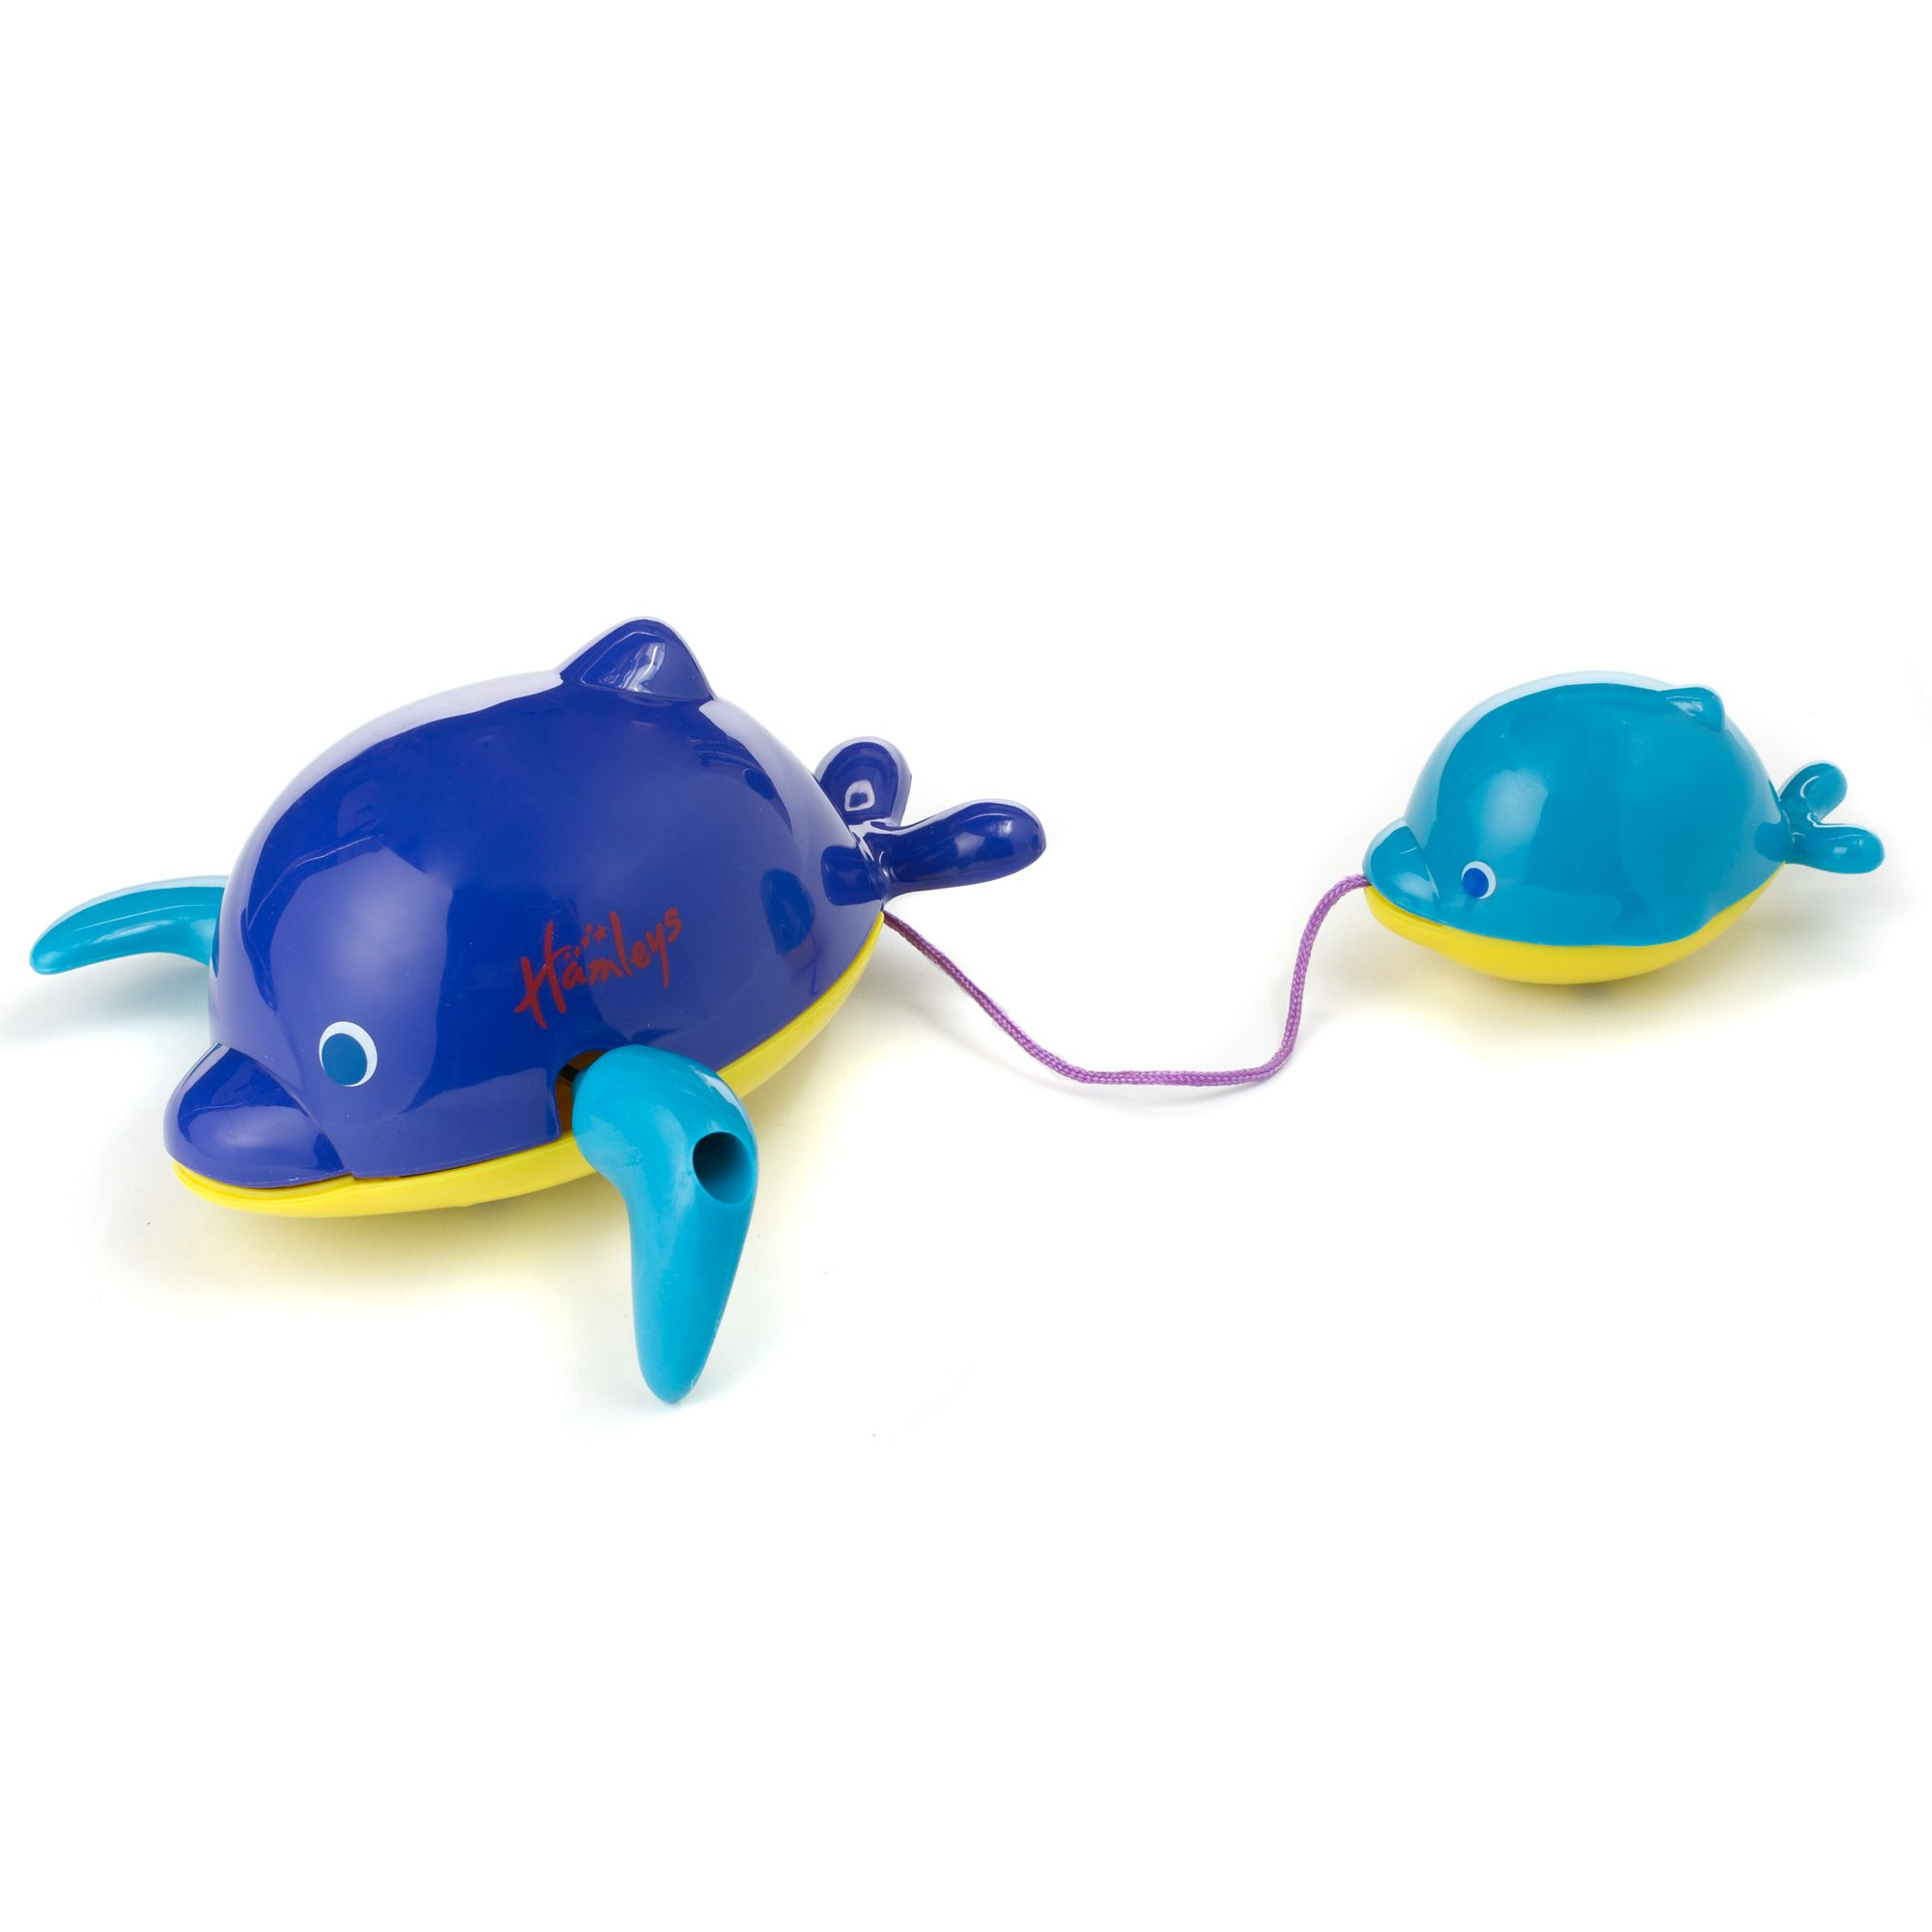 Twist and swim dolphin bath toy